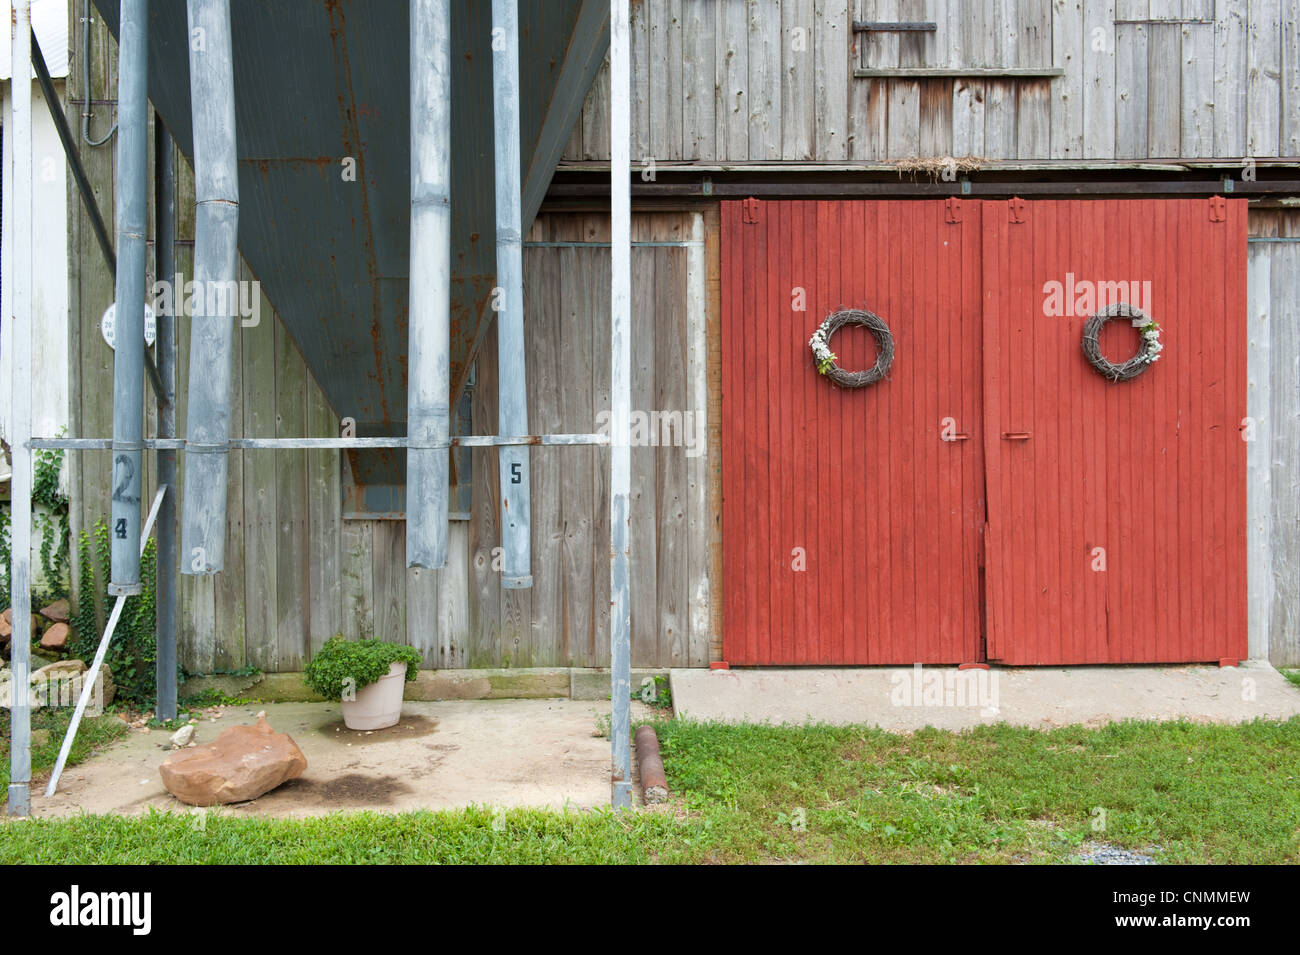 Red barn doors with wreaths hanging on them on a barn next to an old grain bin - Stock Image